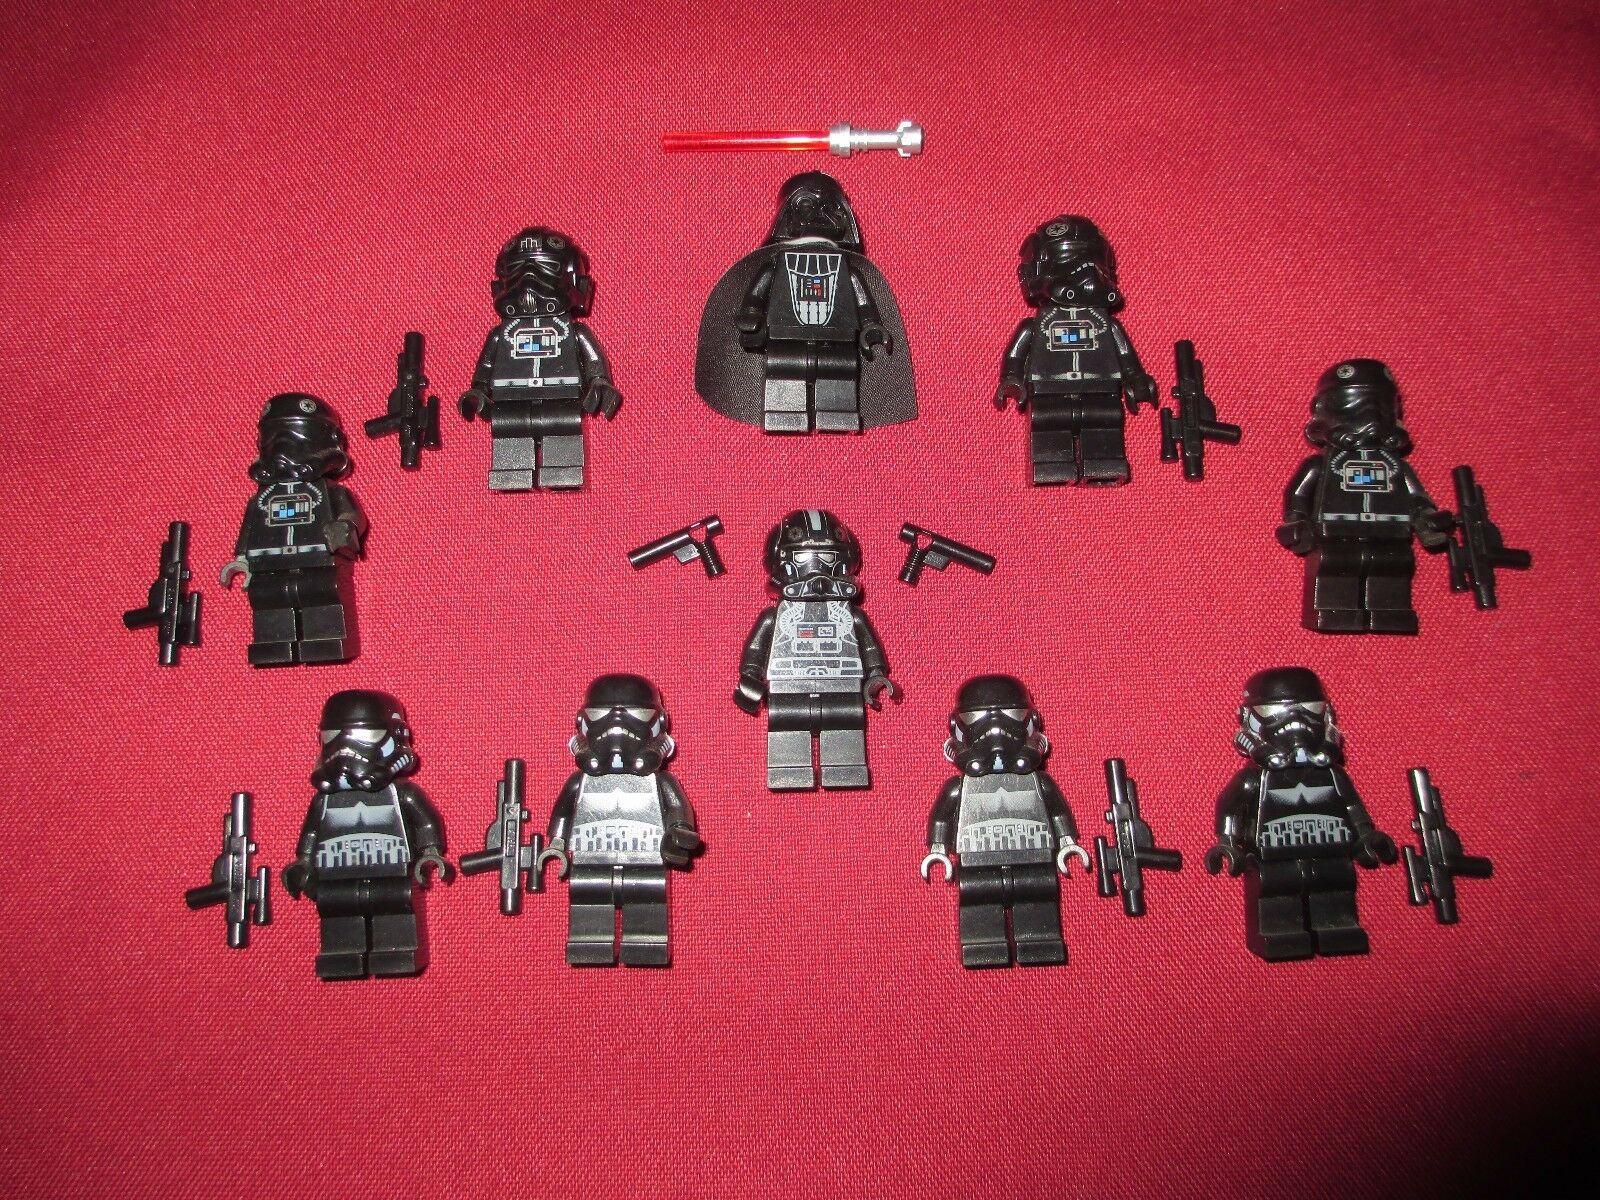 LEGO Star Wars minifigure LOT Darth Vader, V-Wing Tie Bombers Bombers Bombers & Pilots Shadow 91249a